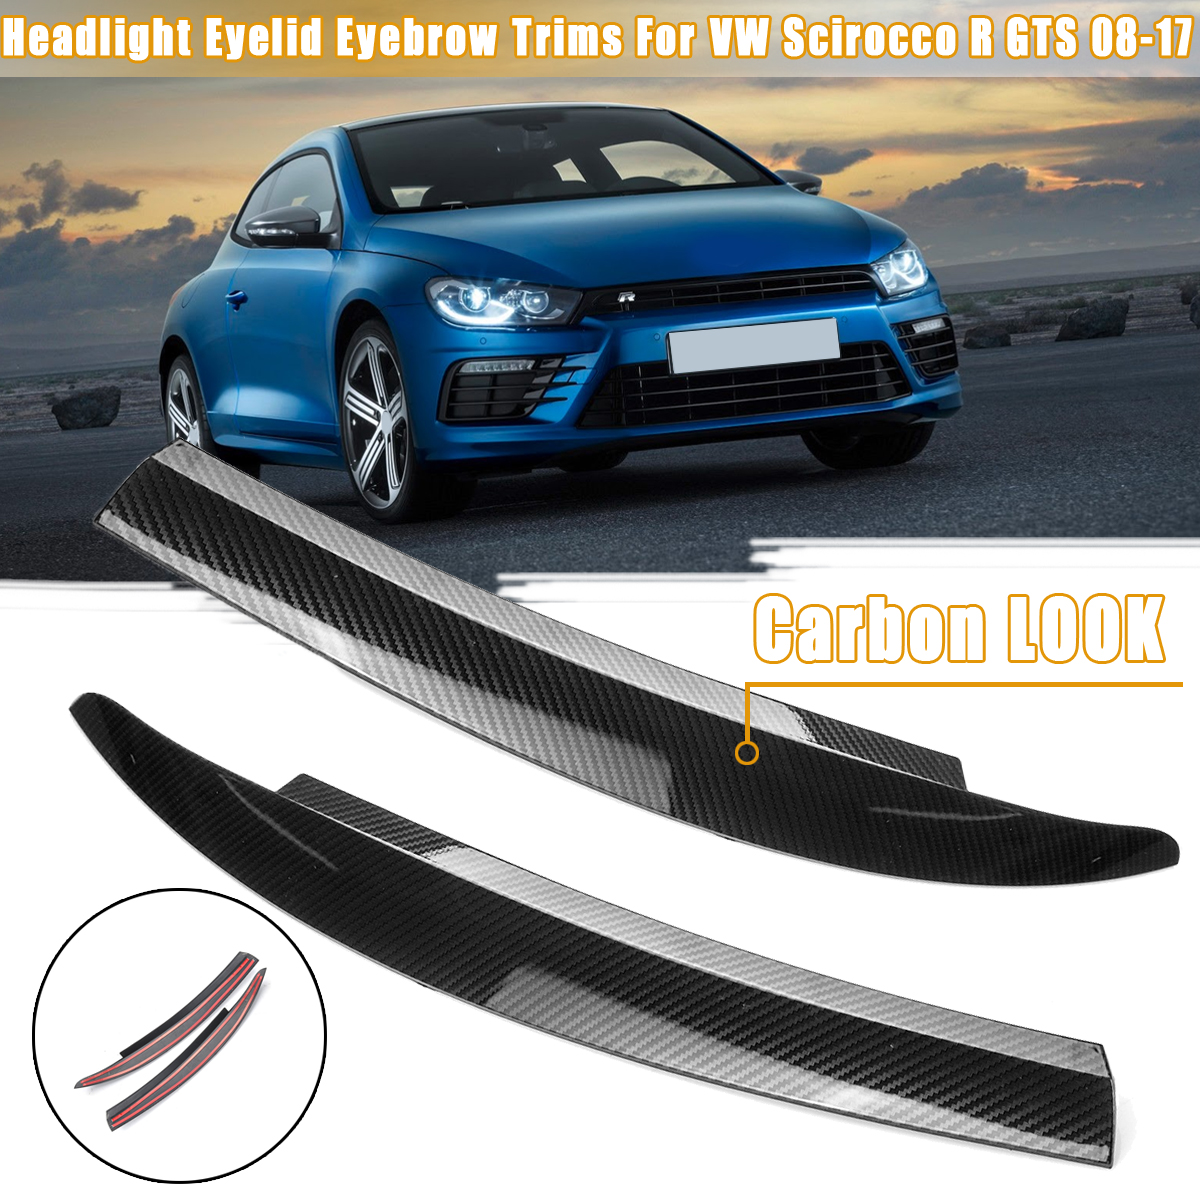 2PCS Black/Carbon Fiber Front Headlight Eyelid Eyebrow Trims For VW Scirocco R GTS 2008